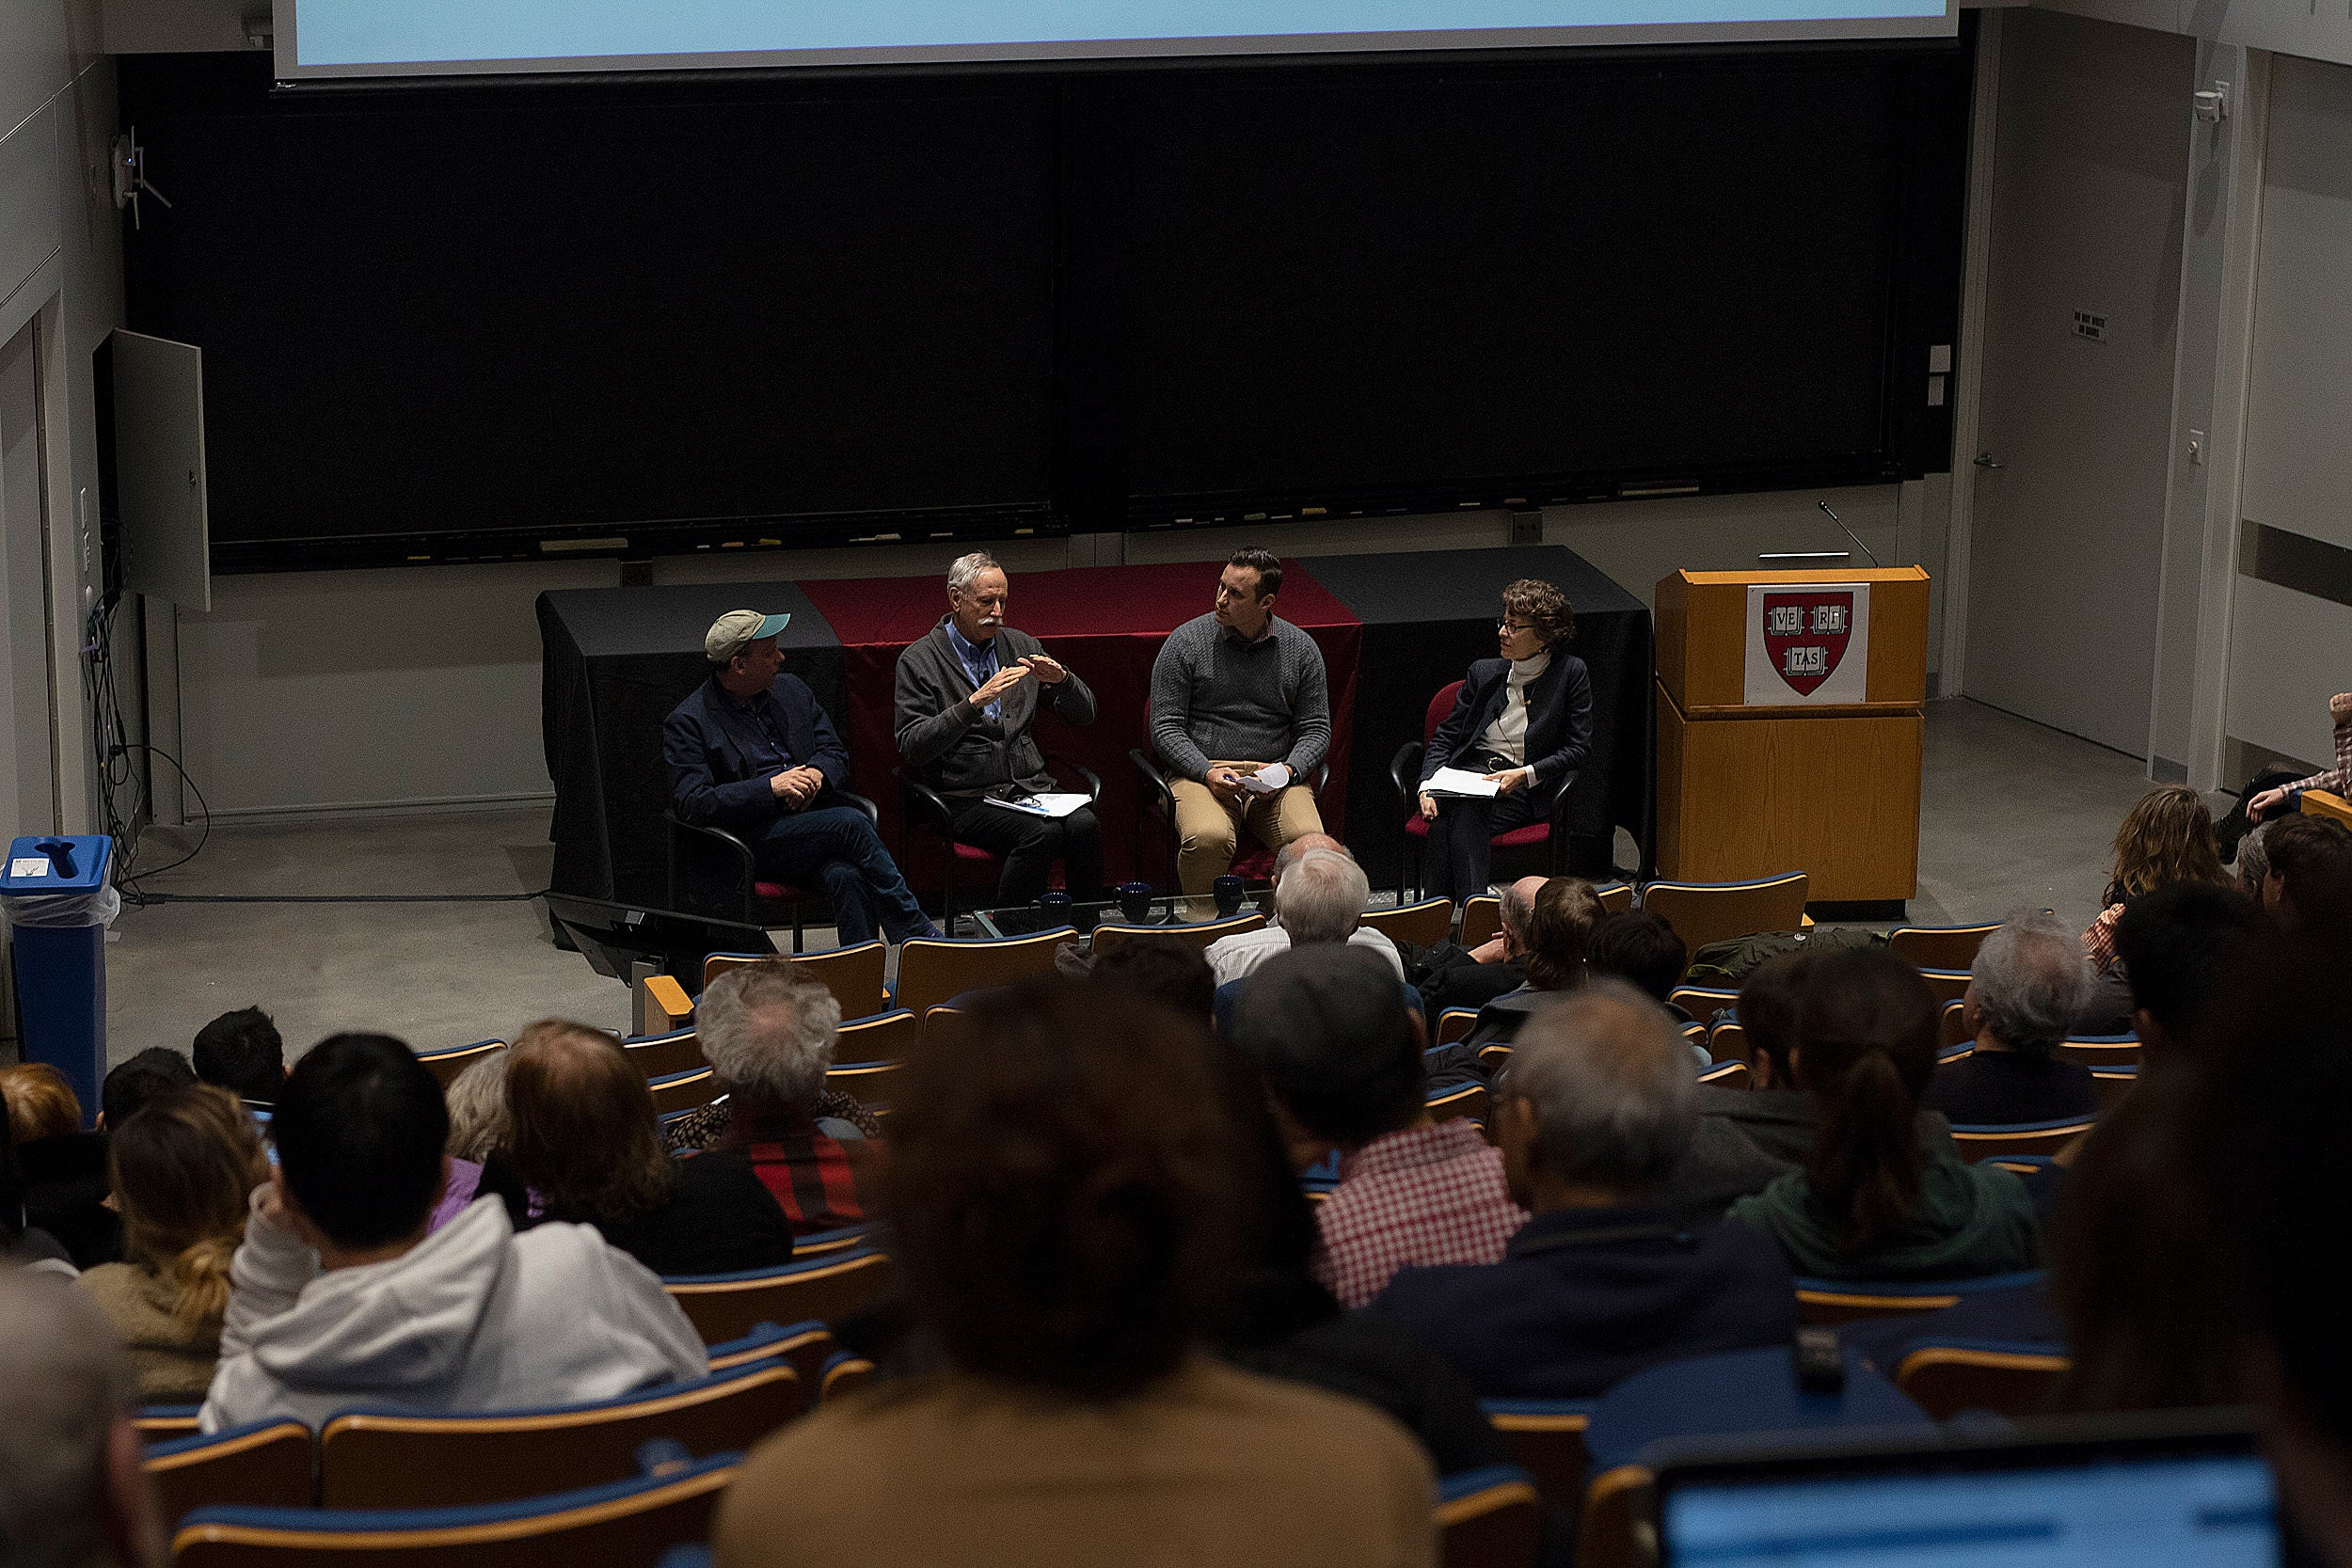 From left to right, Paul Greenberg, Professor Walter Willett, Professor Christopher Golden, and Professor Susan Korrick.